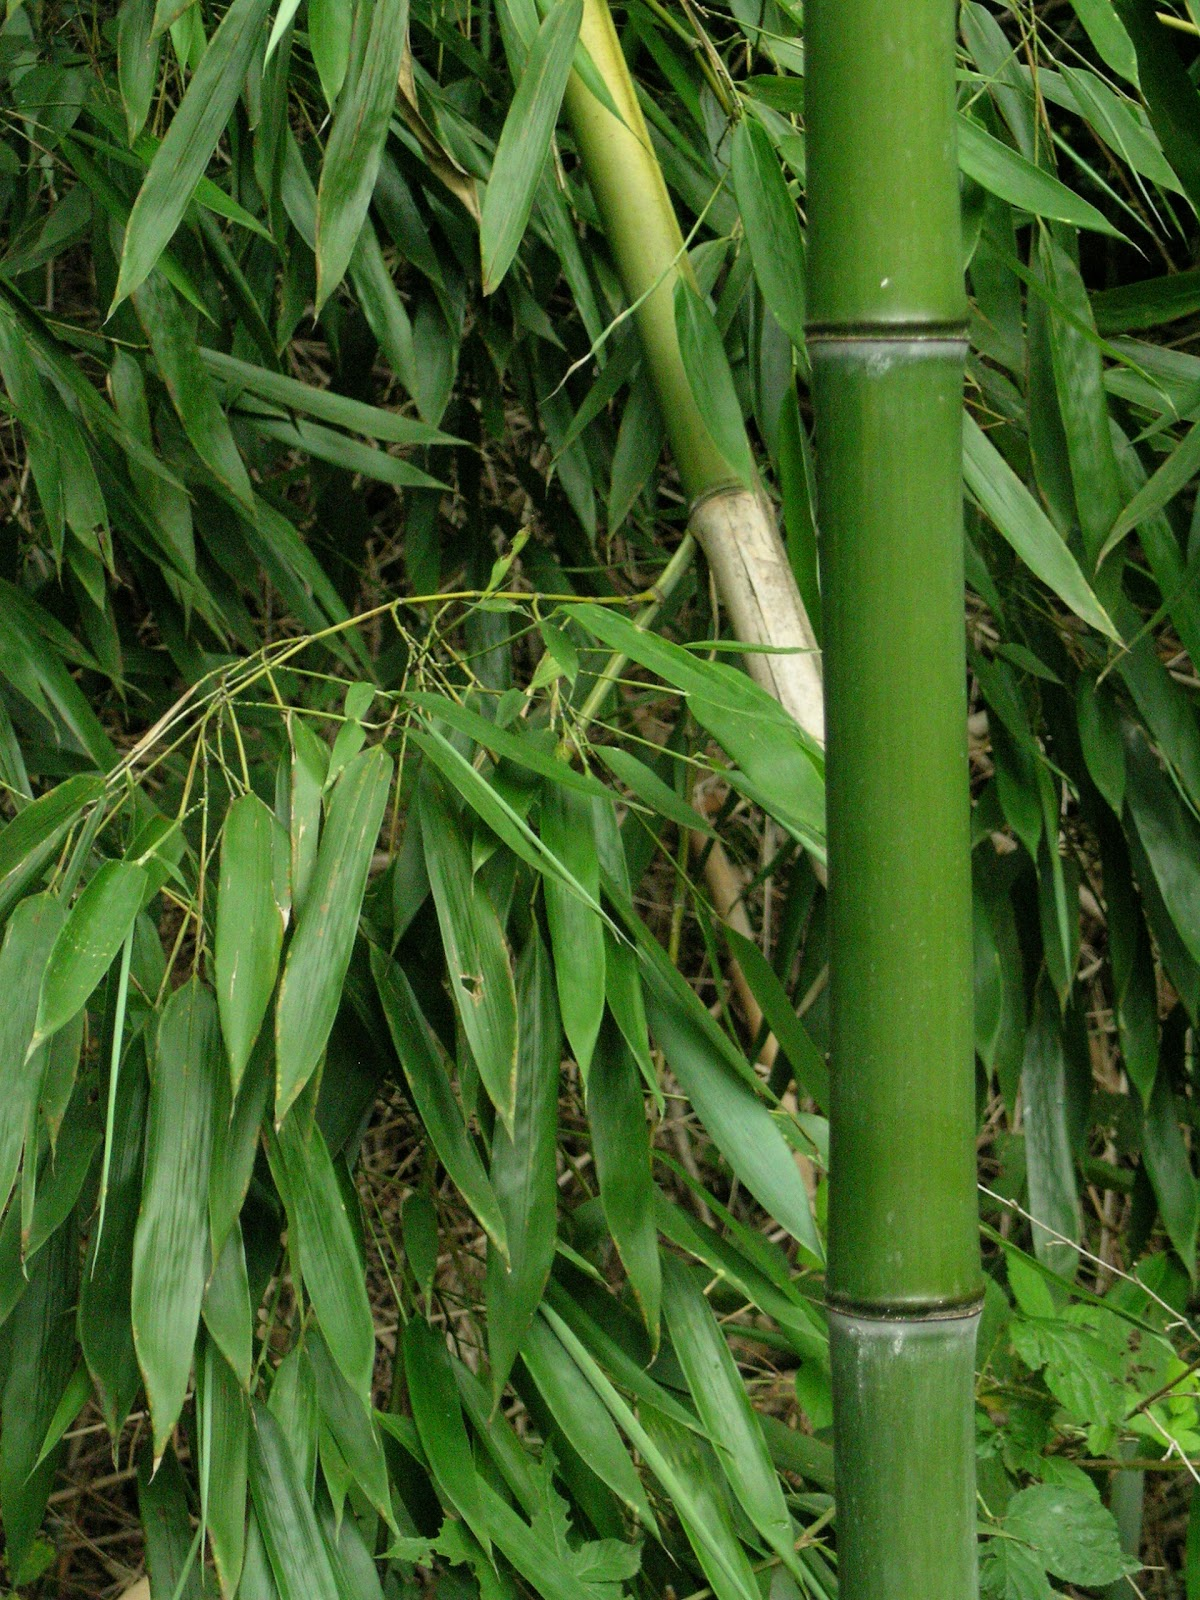 Bamboo dating website